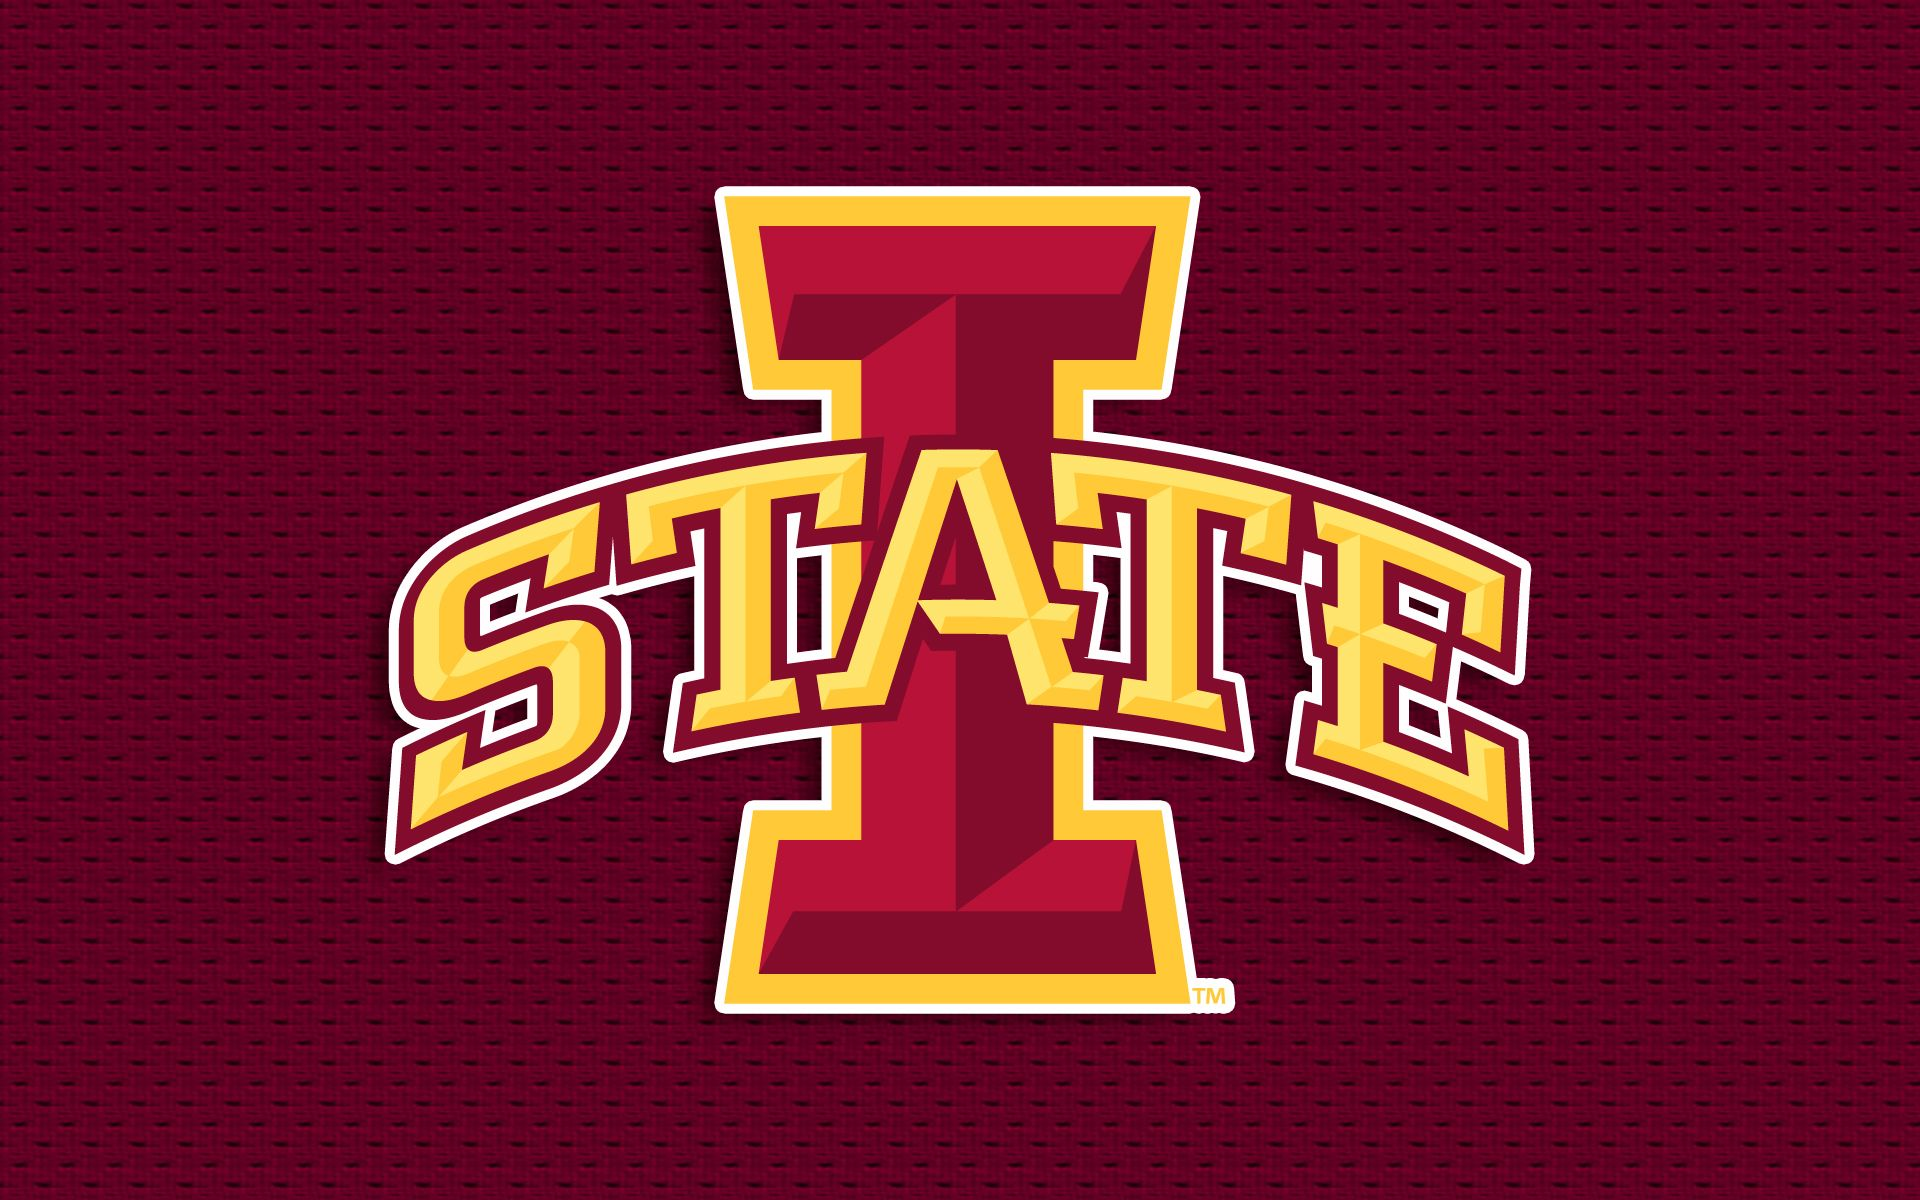 Iowa State Wallpaper For Iphone Wallpapersafari Iowa State Iowa State University Personalized Cake Toppers